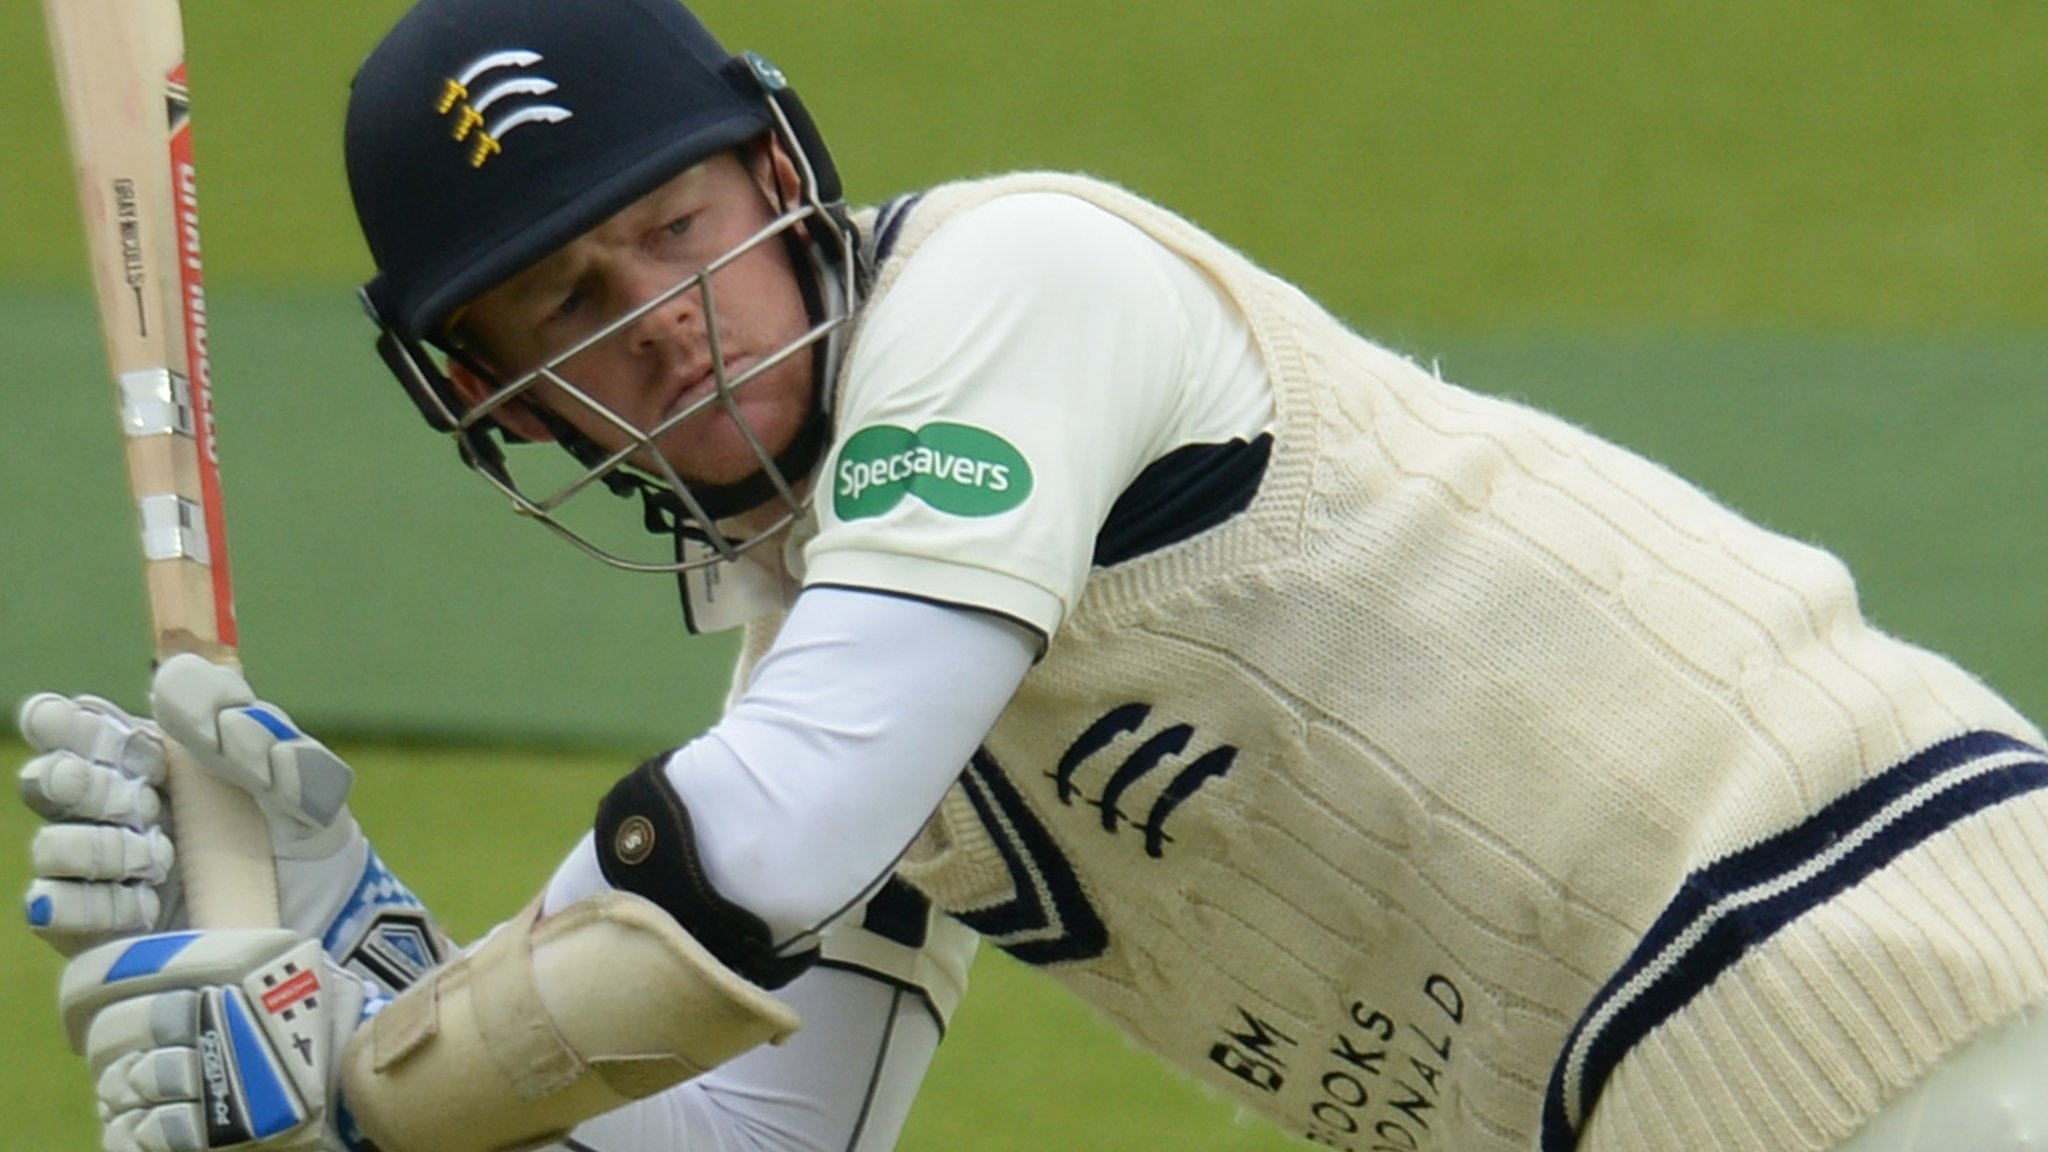 County Championship: Sam Robson & Max Holden help Middx rally against Northants